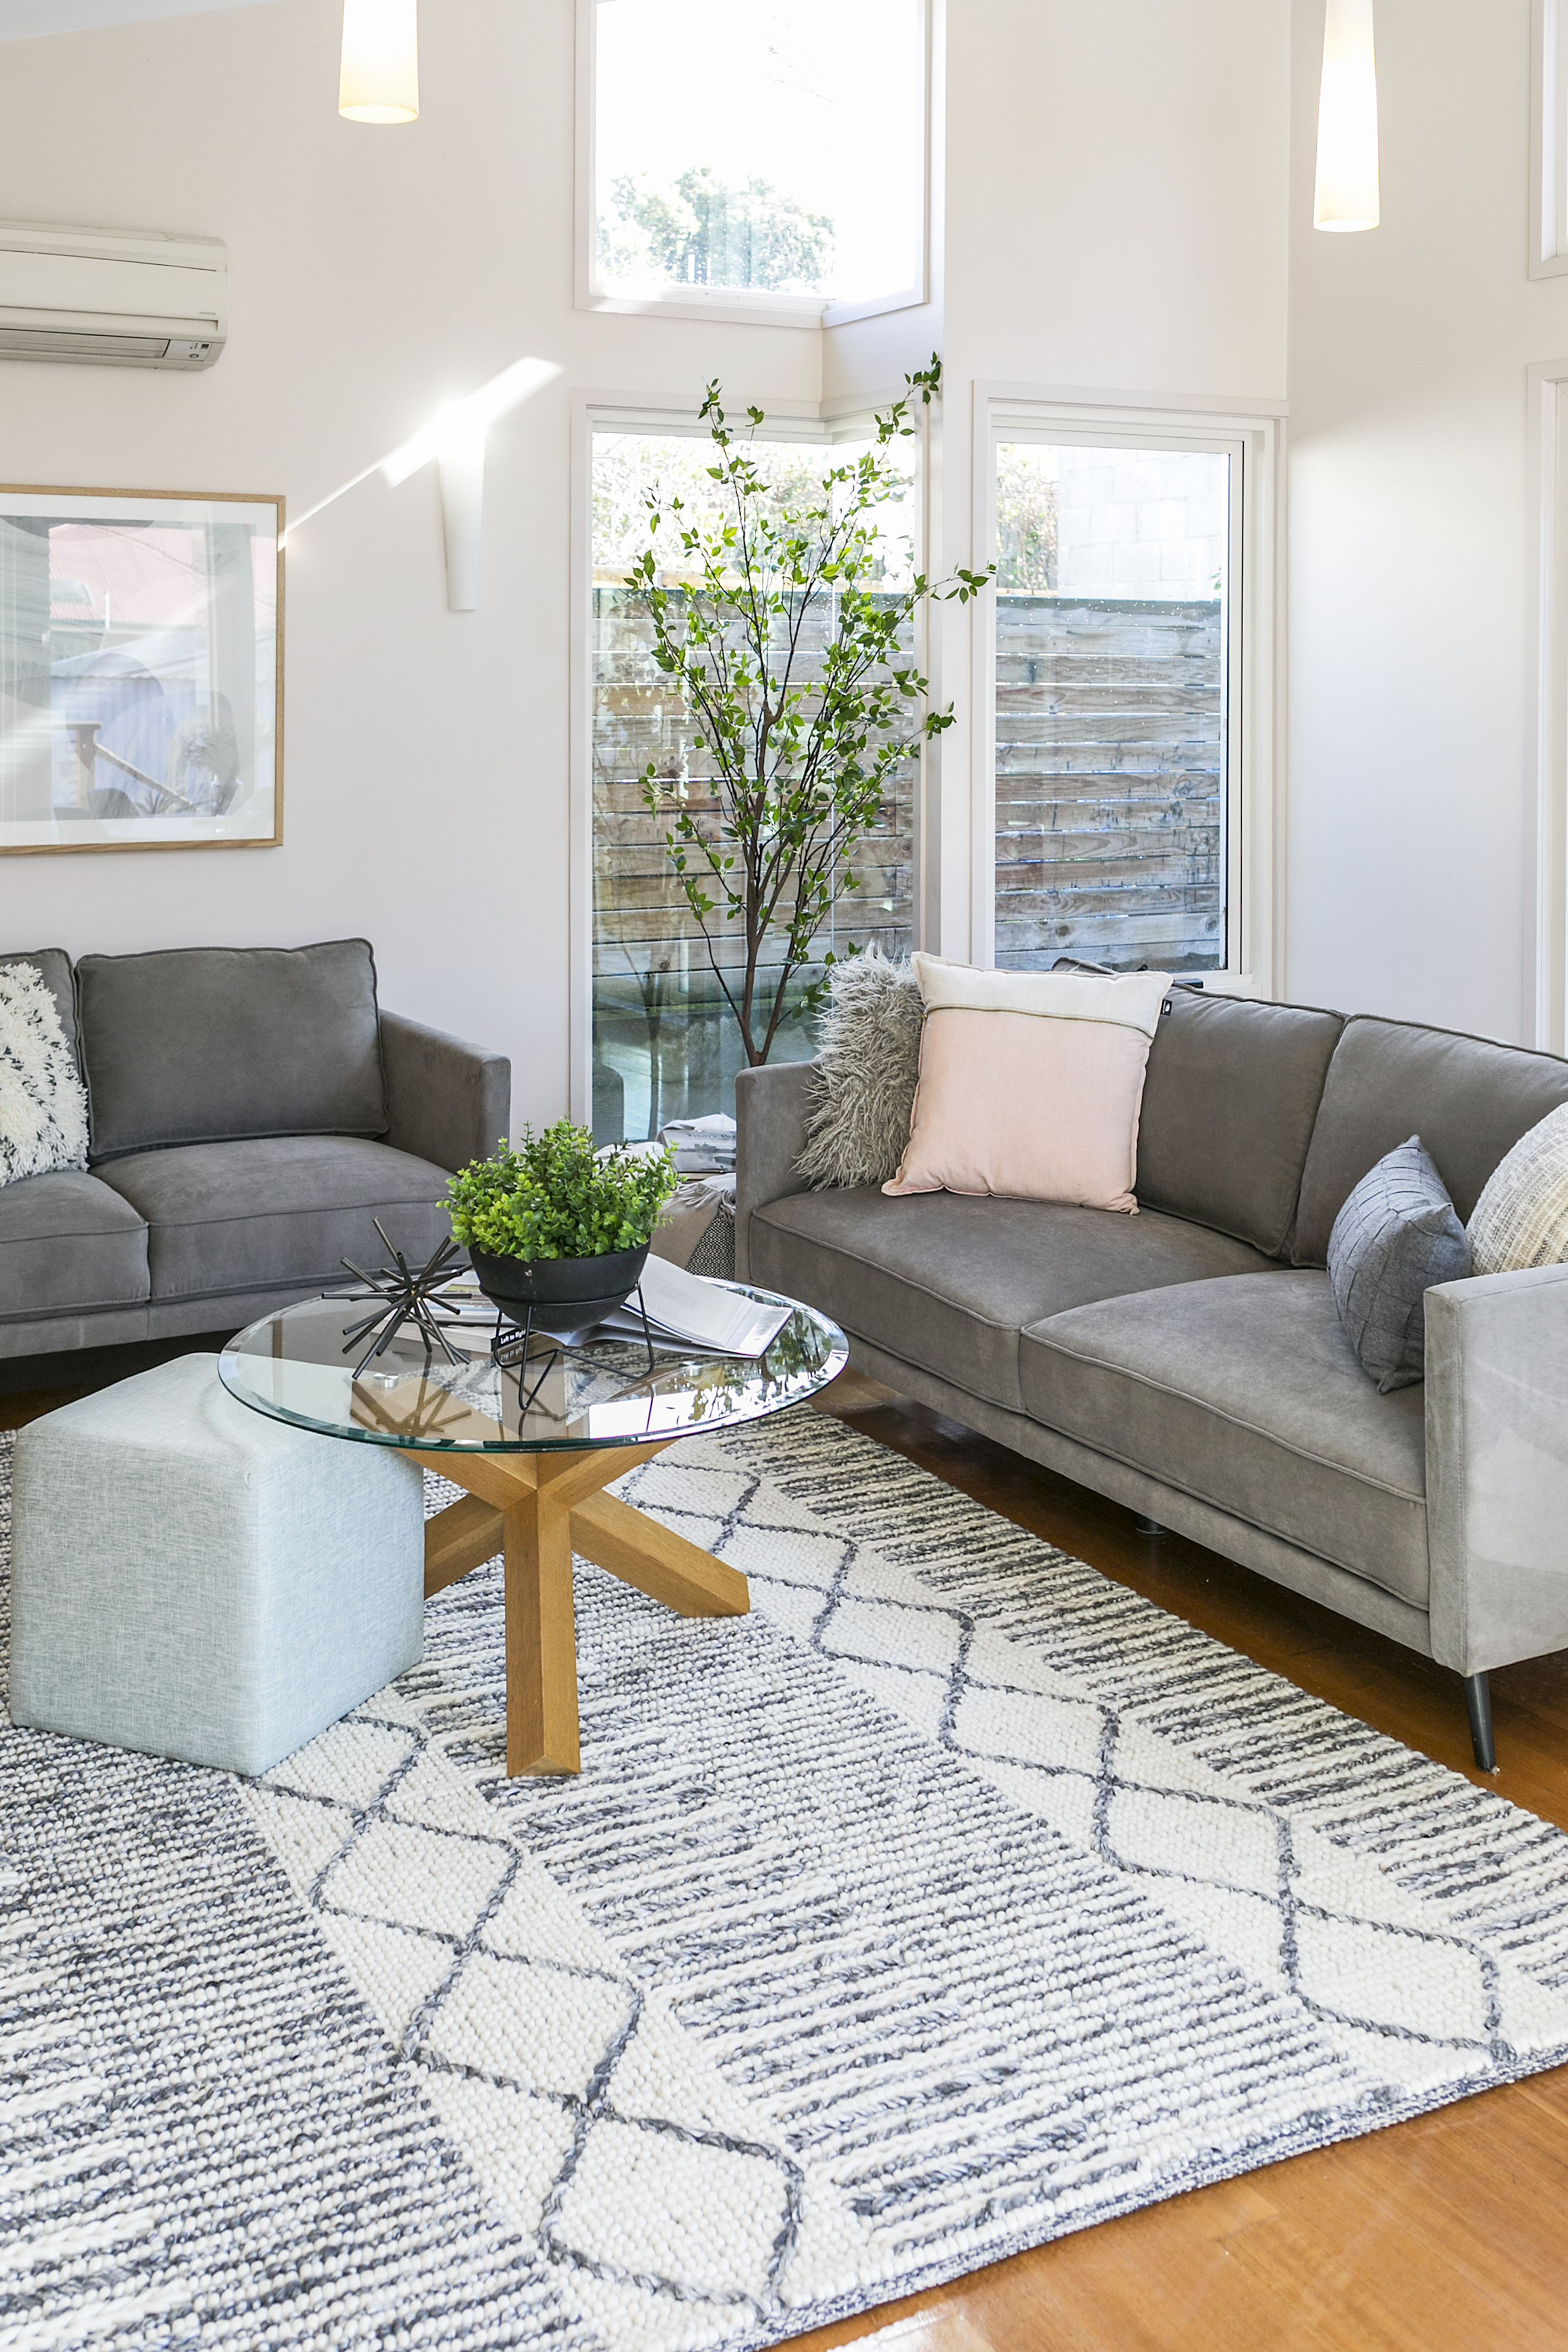 Textured Floor Rug Is The Hero In This Light Filled Living Room